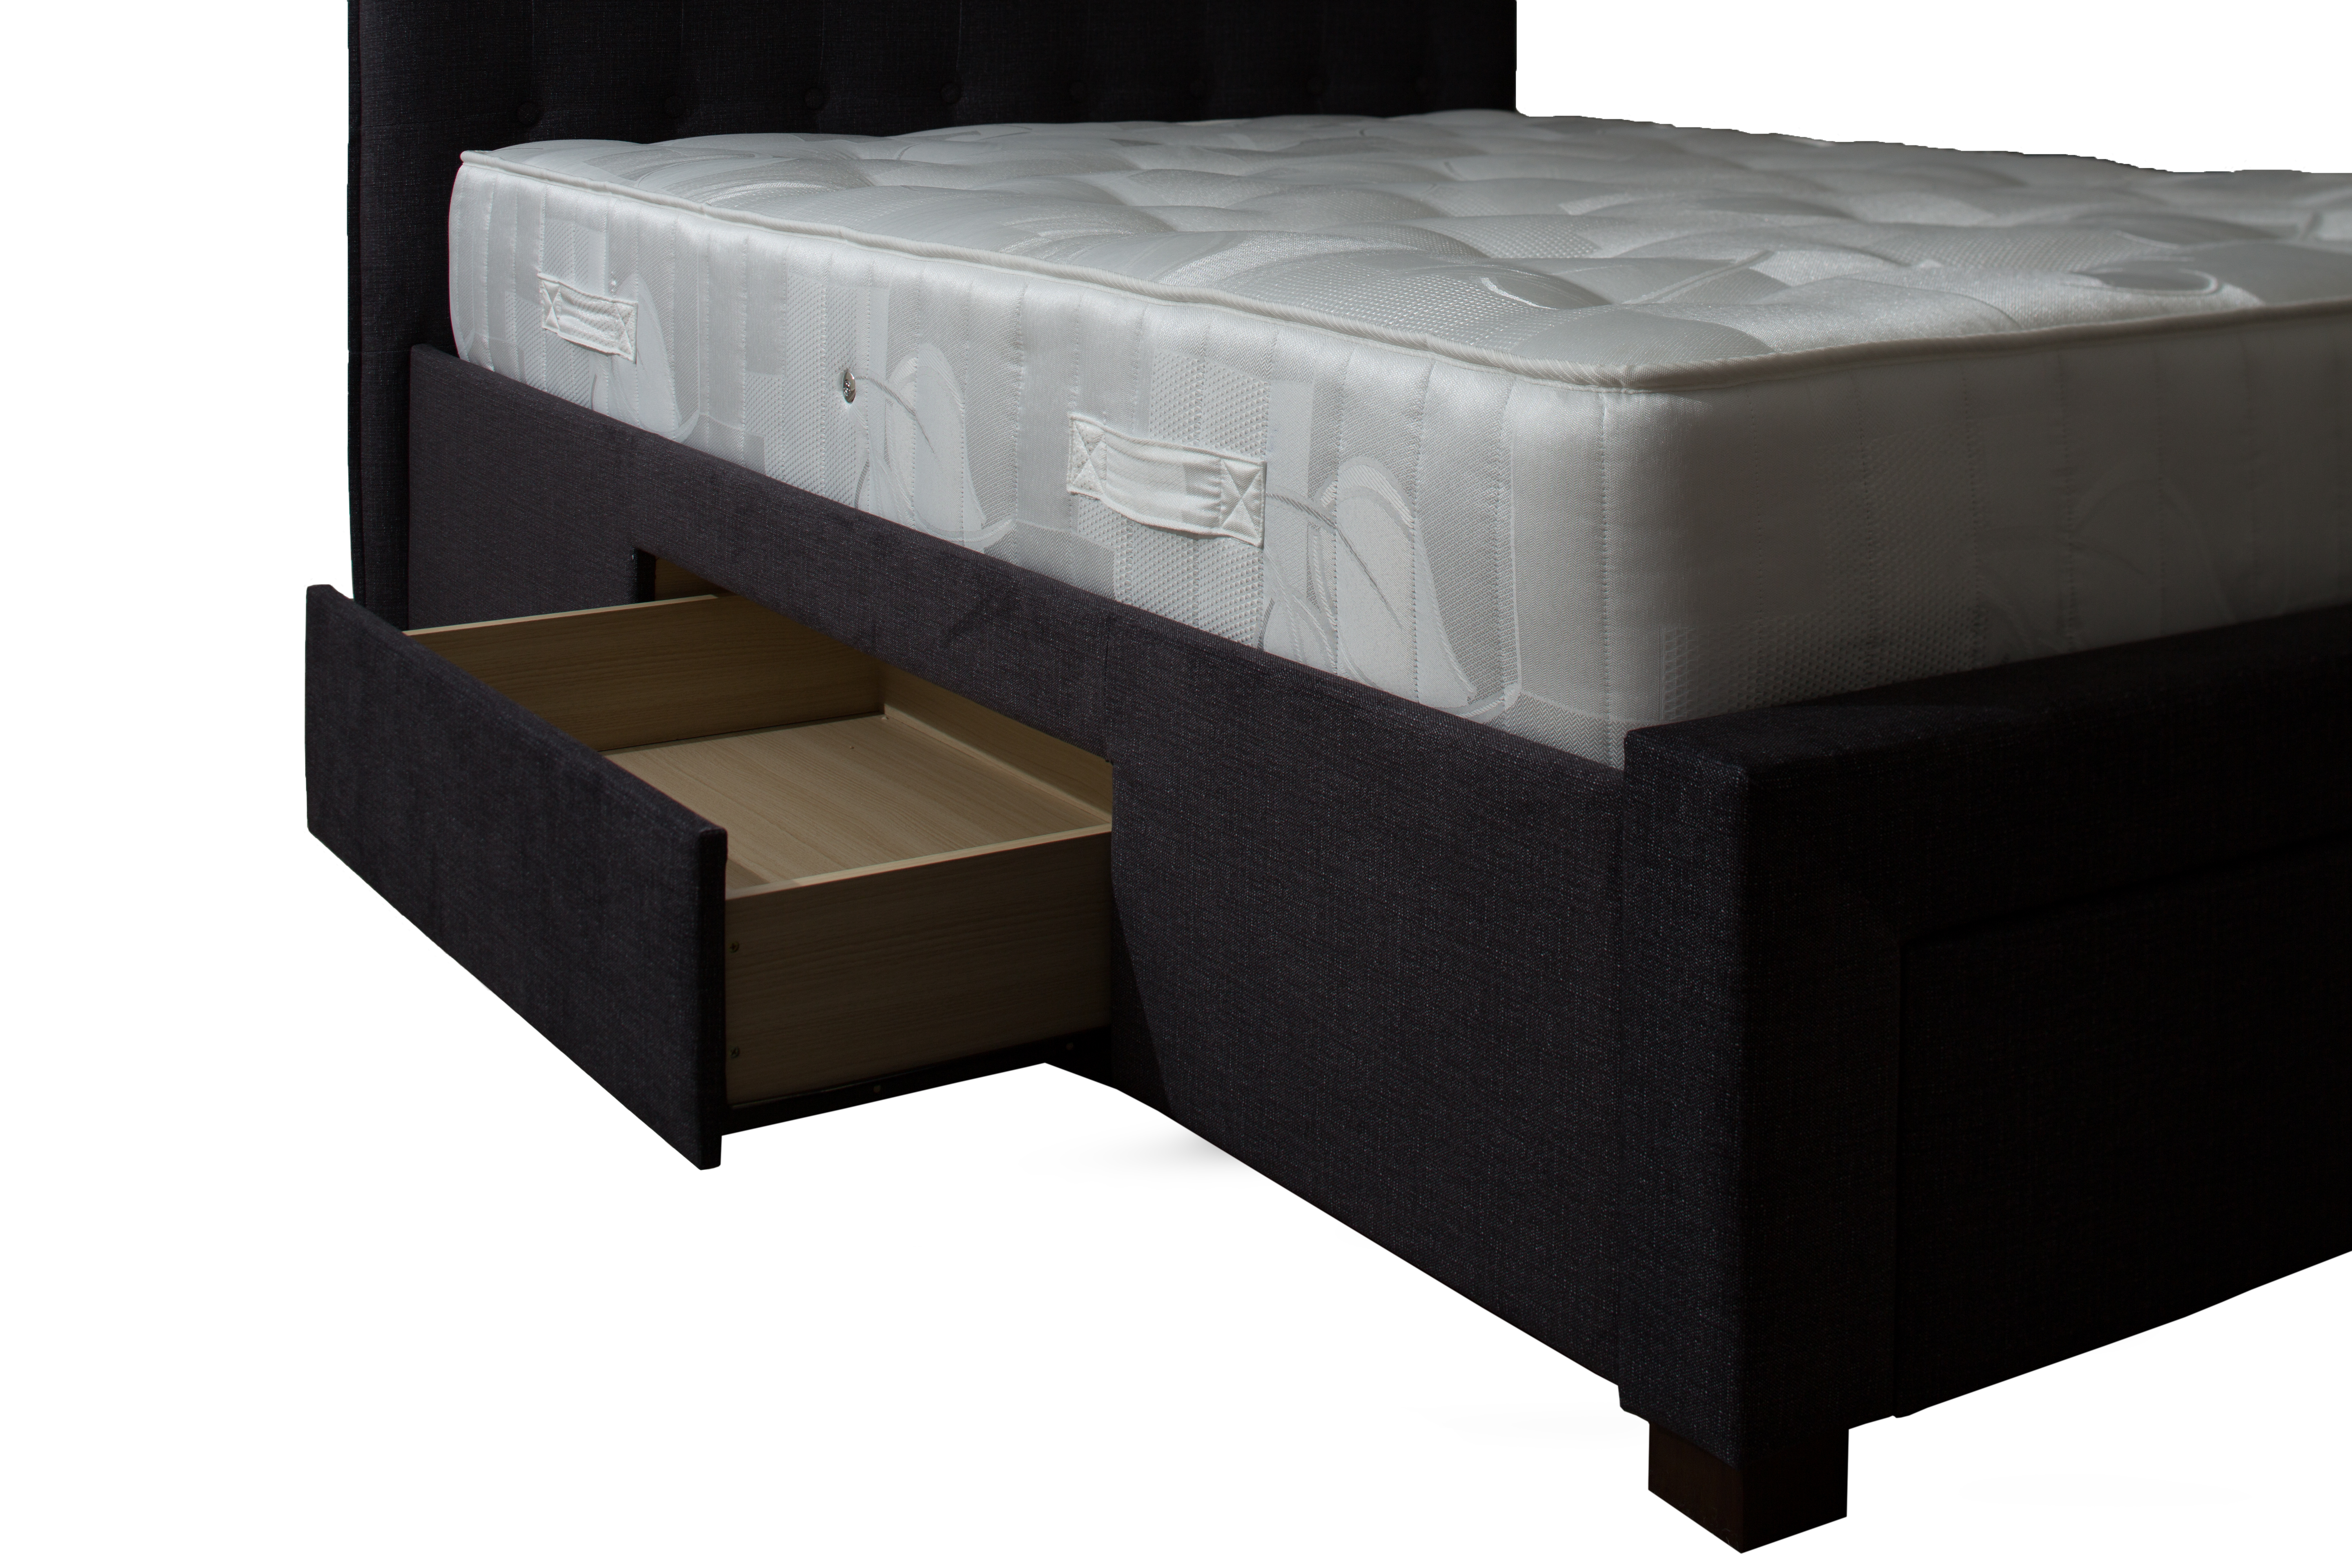 5ft King Size Leather Sleigh Bed With Storage 4x Drawers Brown Hannover Grey Fabric Bed